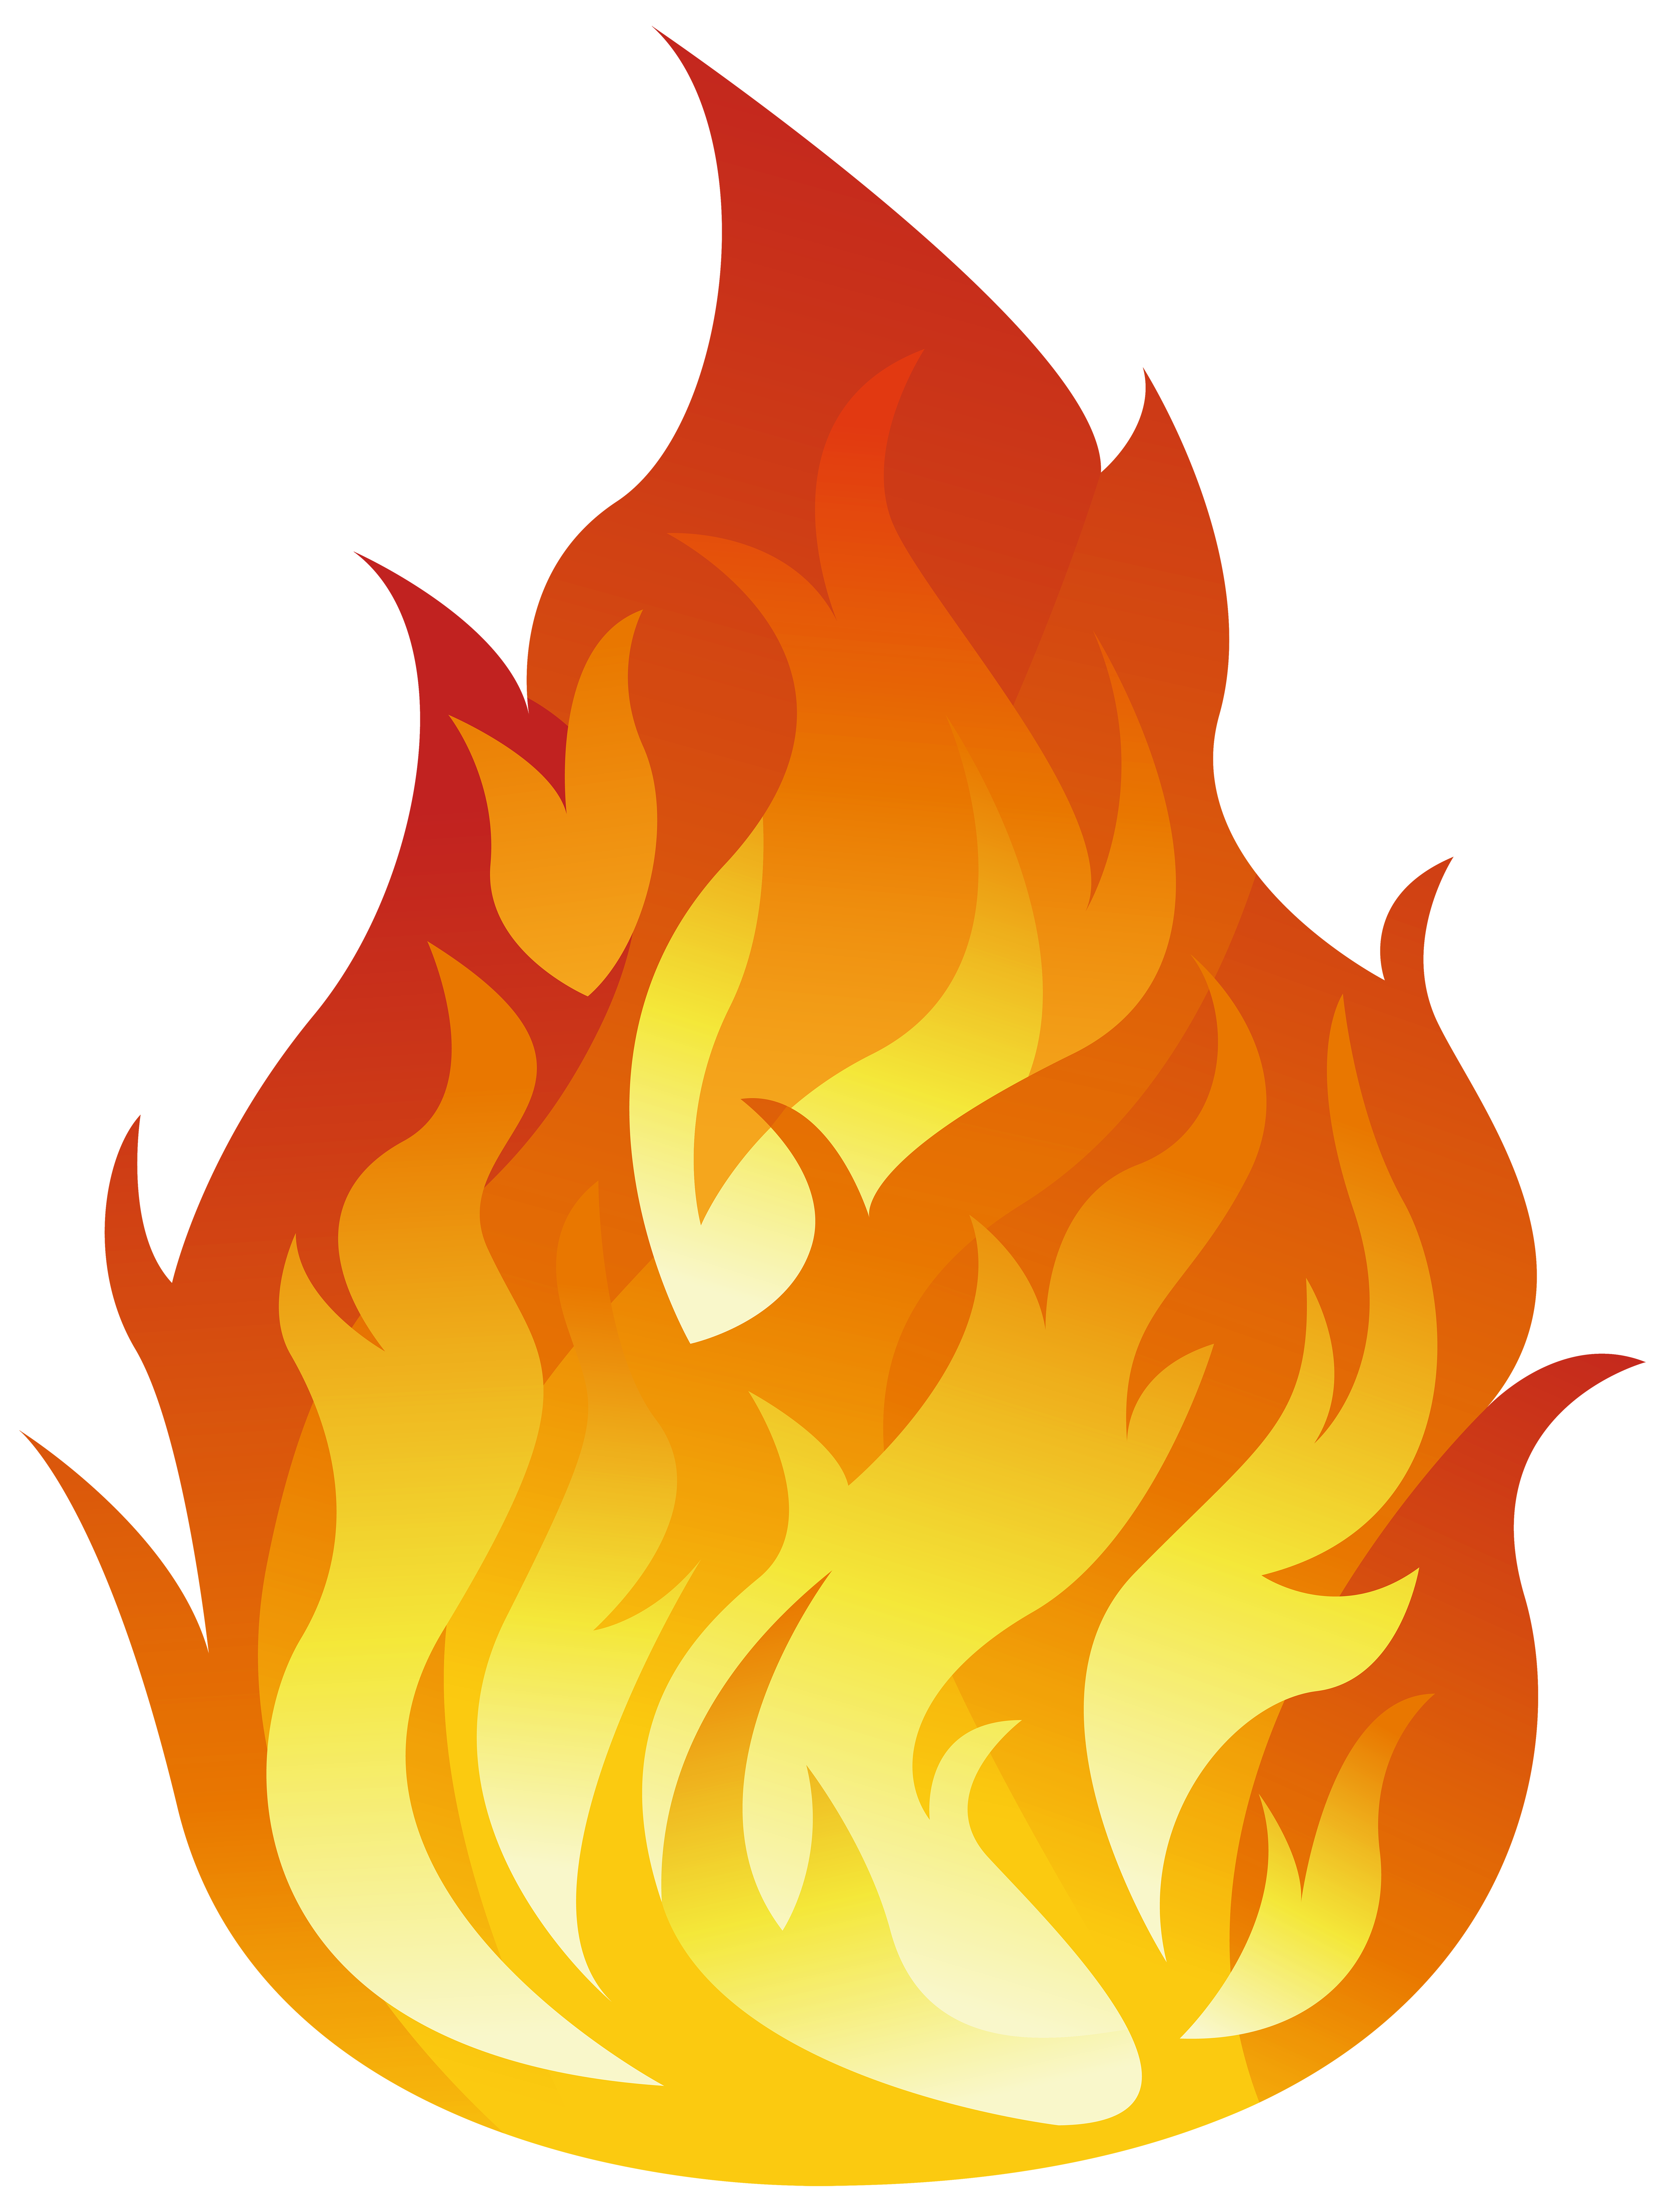 clipart fire at getdrawings com free for personal use clipart fire rh getdrawings com fire clip art free fire clip art free